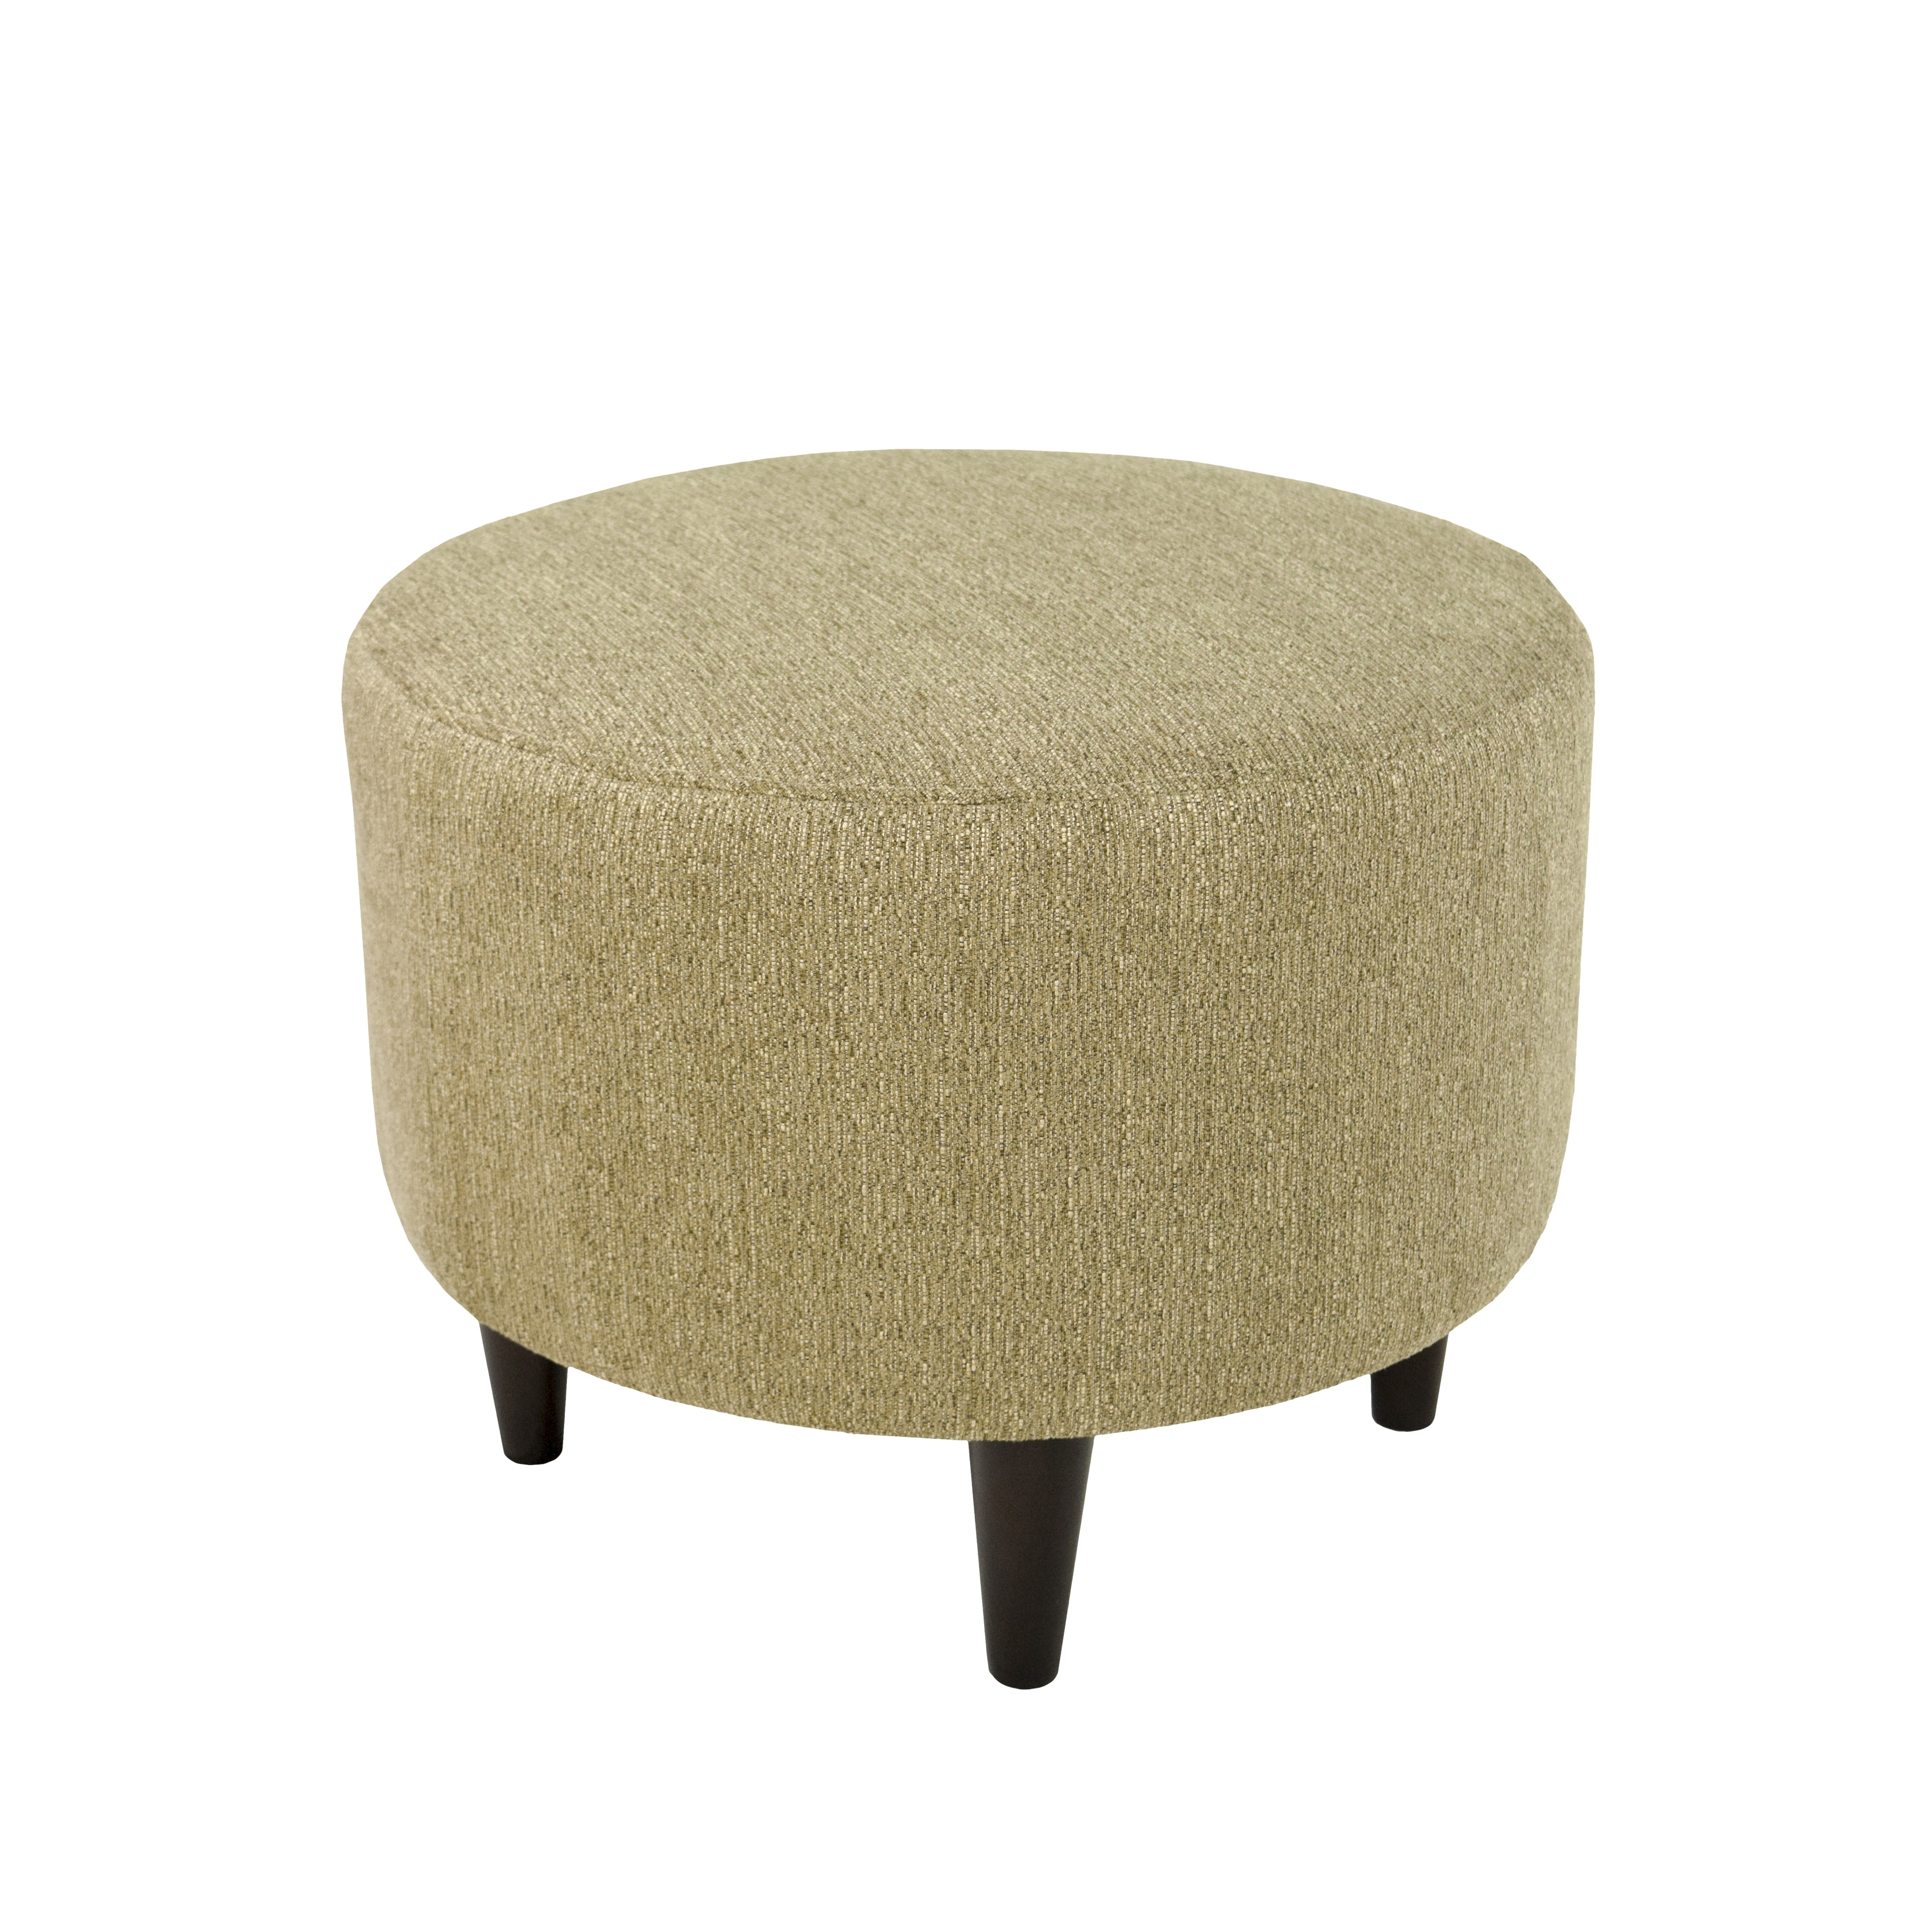 Shop mjl furniture sophia text2olivia round upholstered ottoman free shipping today overstock com 11454270